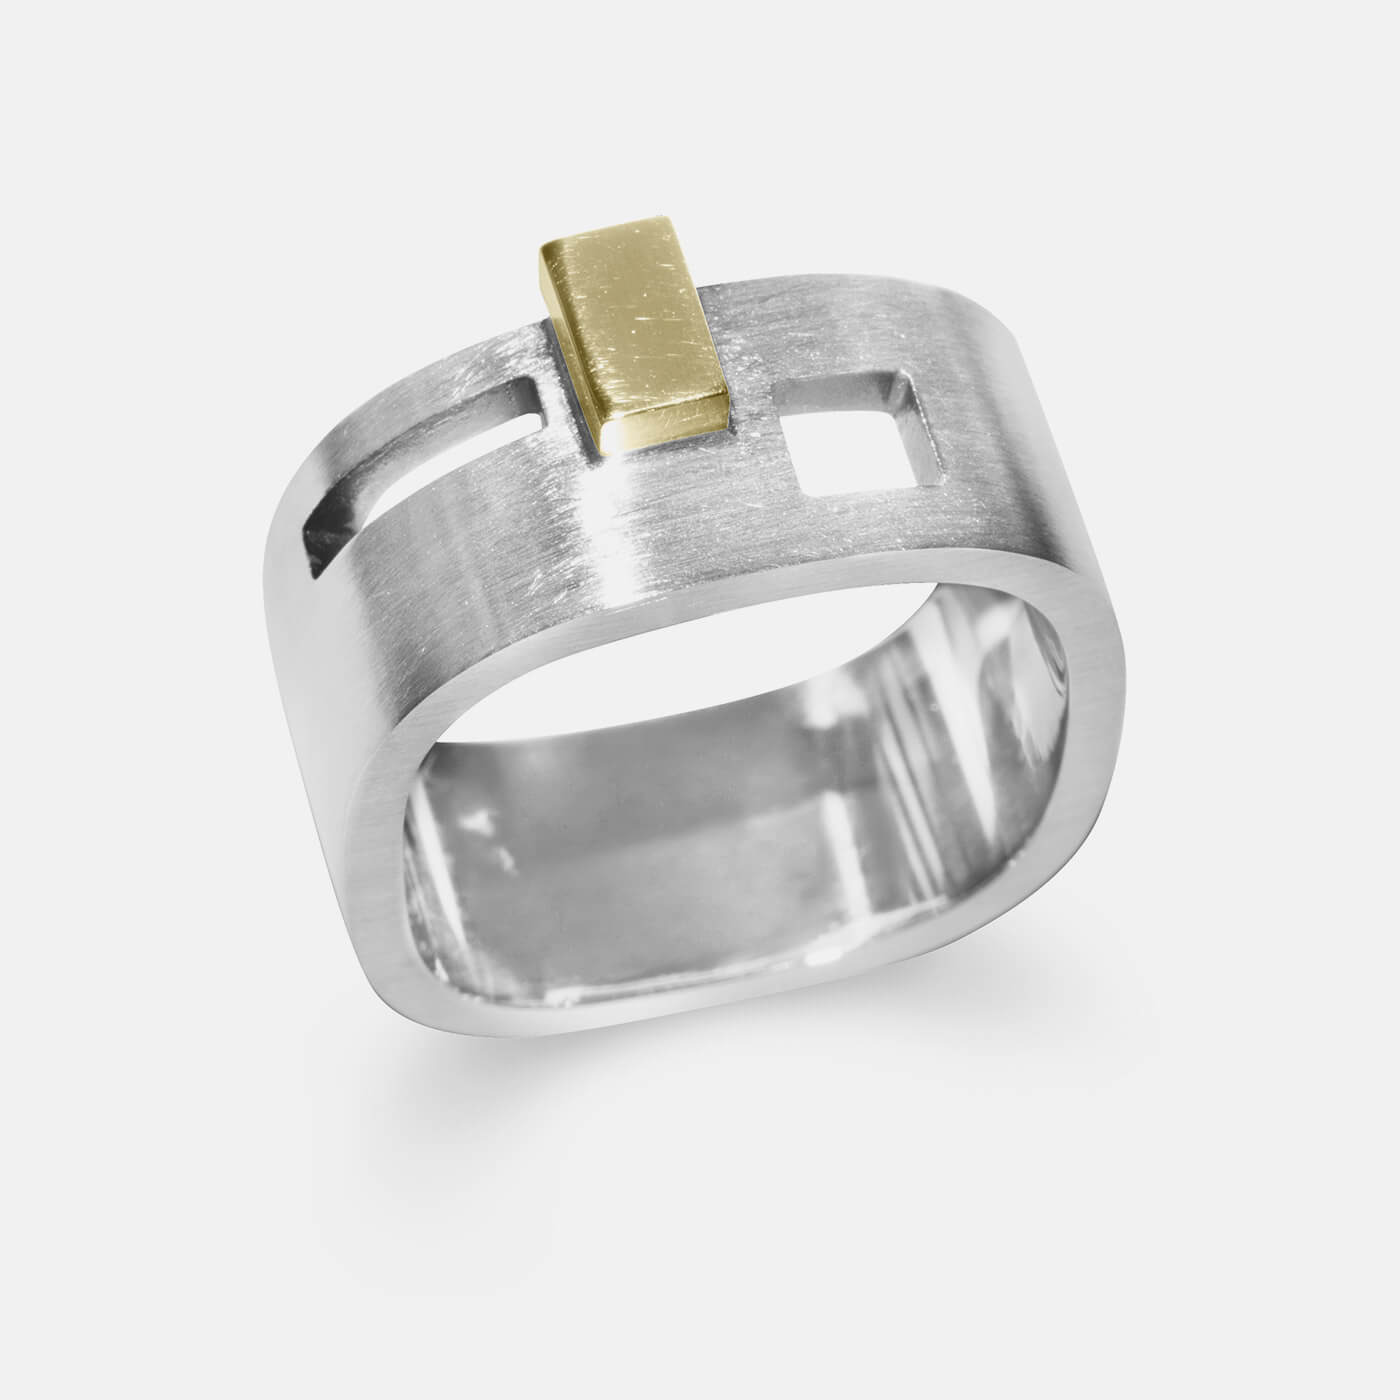 Architectural Progression 4 Wedding Ring